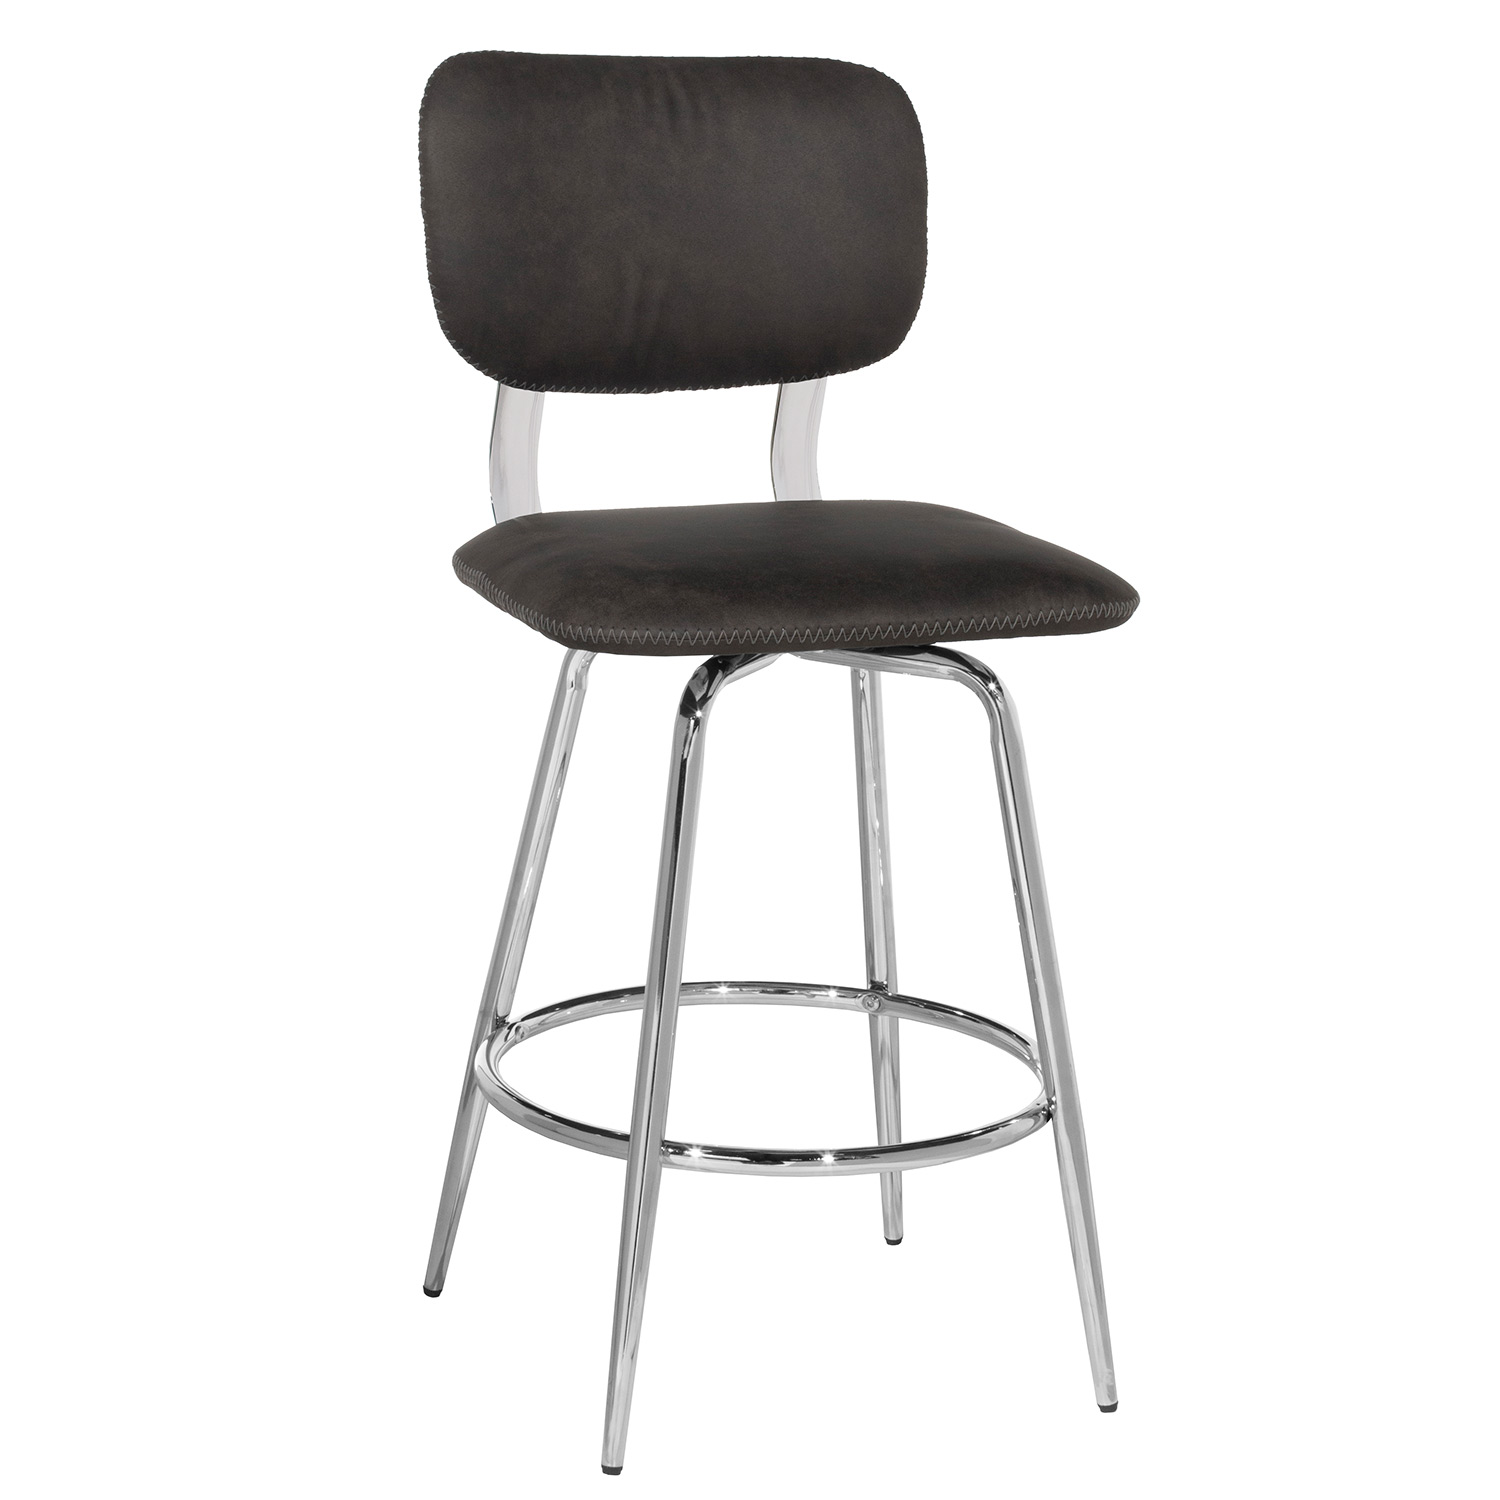 Hillsdale Bloomfield Retro Metal Swivel Counter Height Stool - Chrome- Set of 2